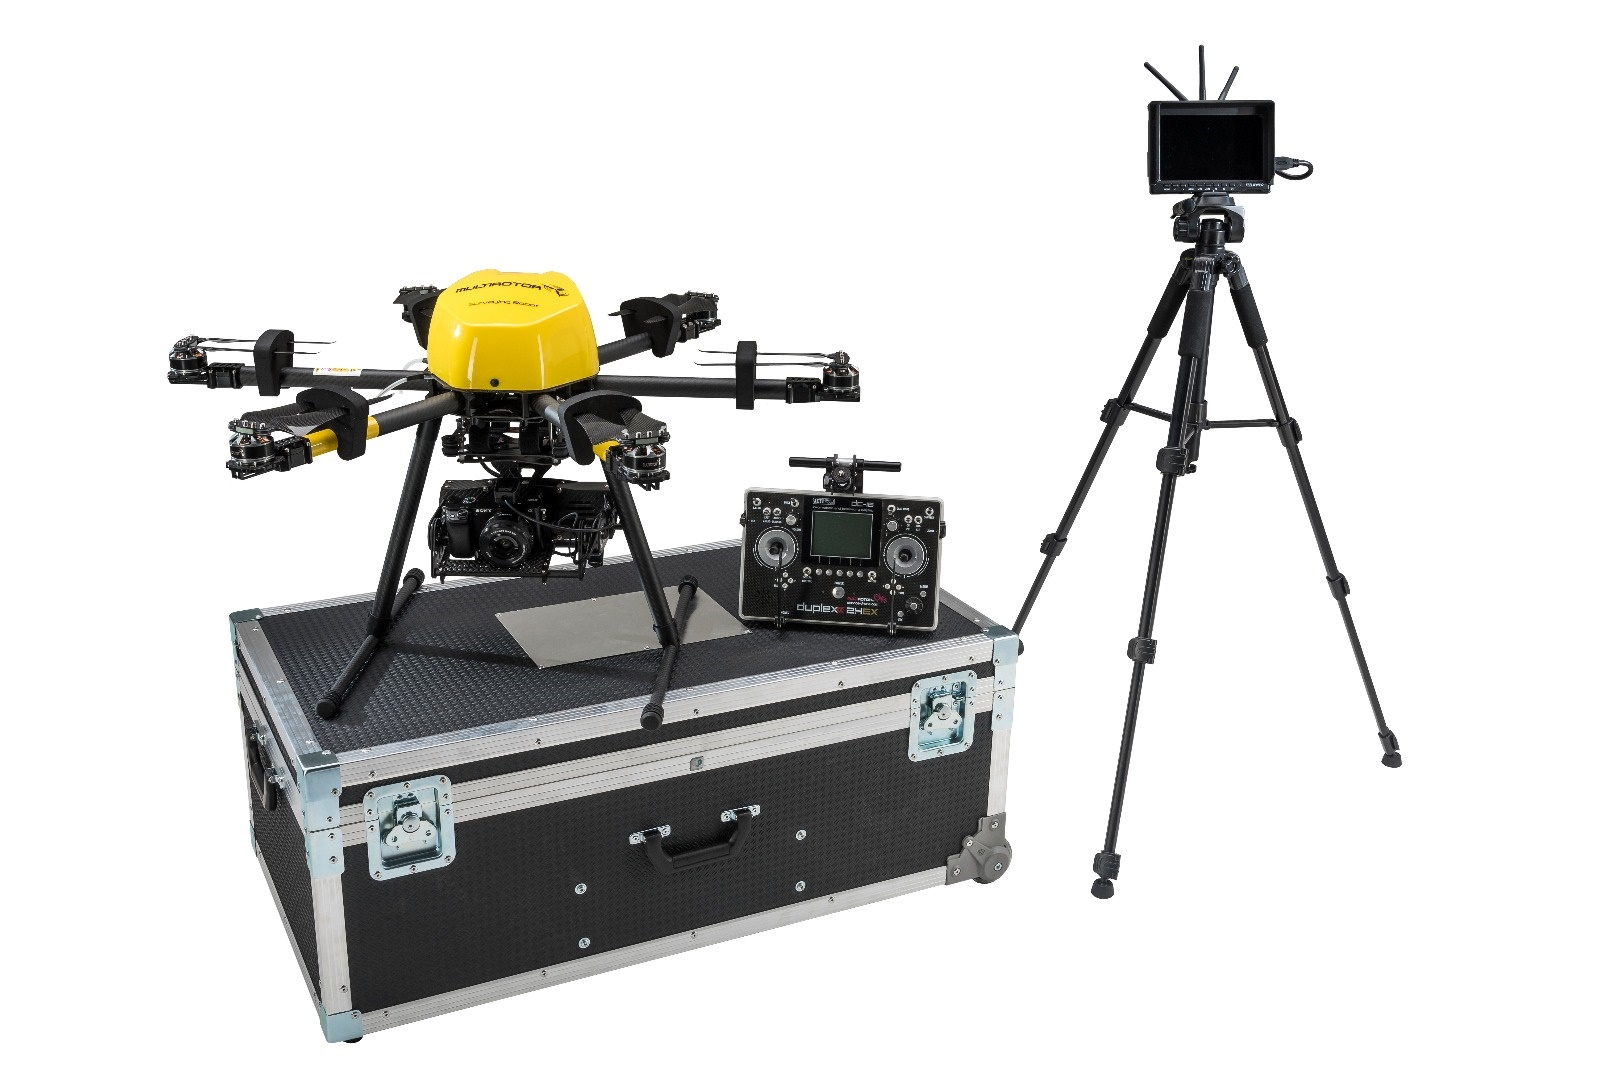 multirotor_g4_surveying_robot_equip